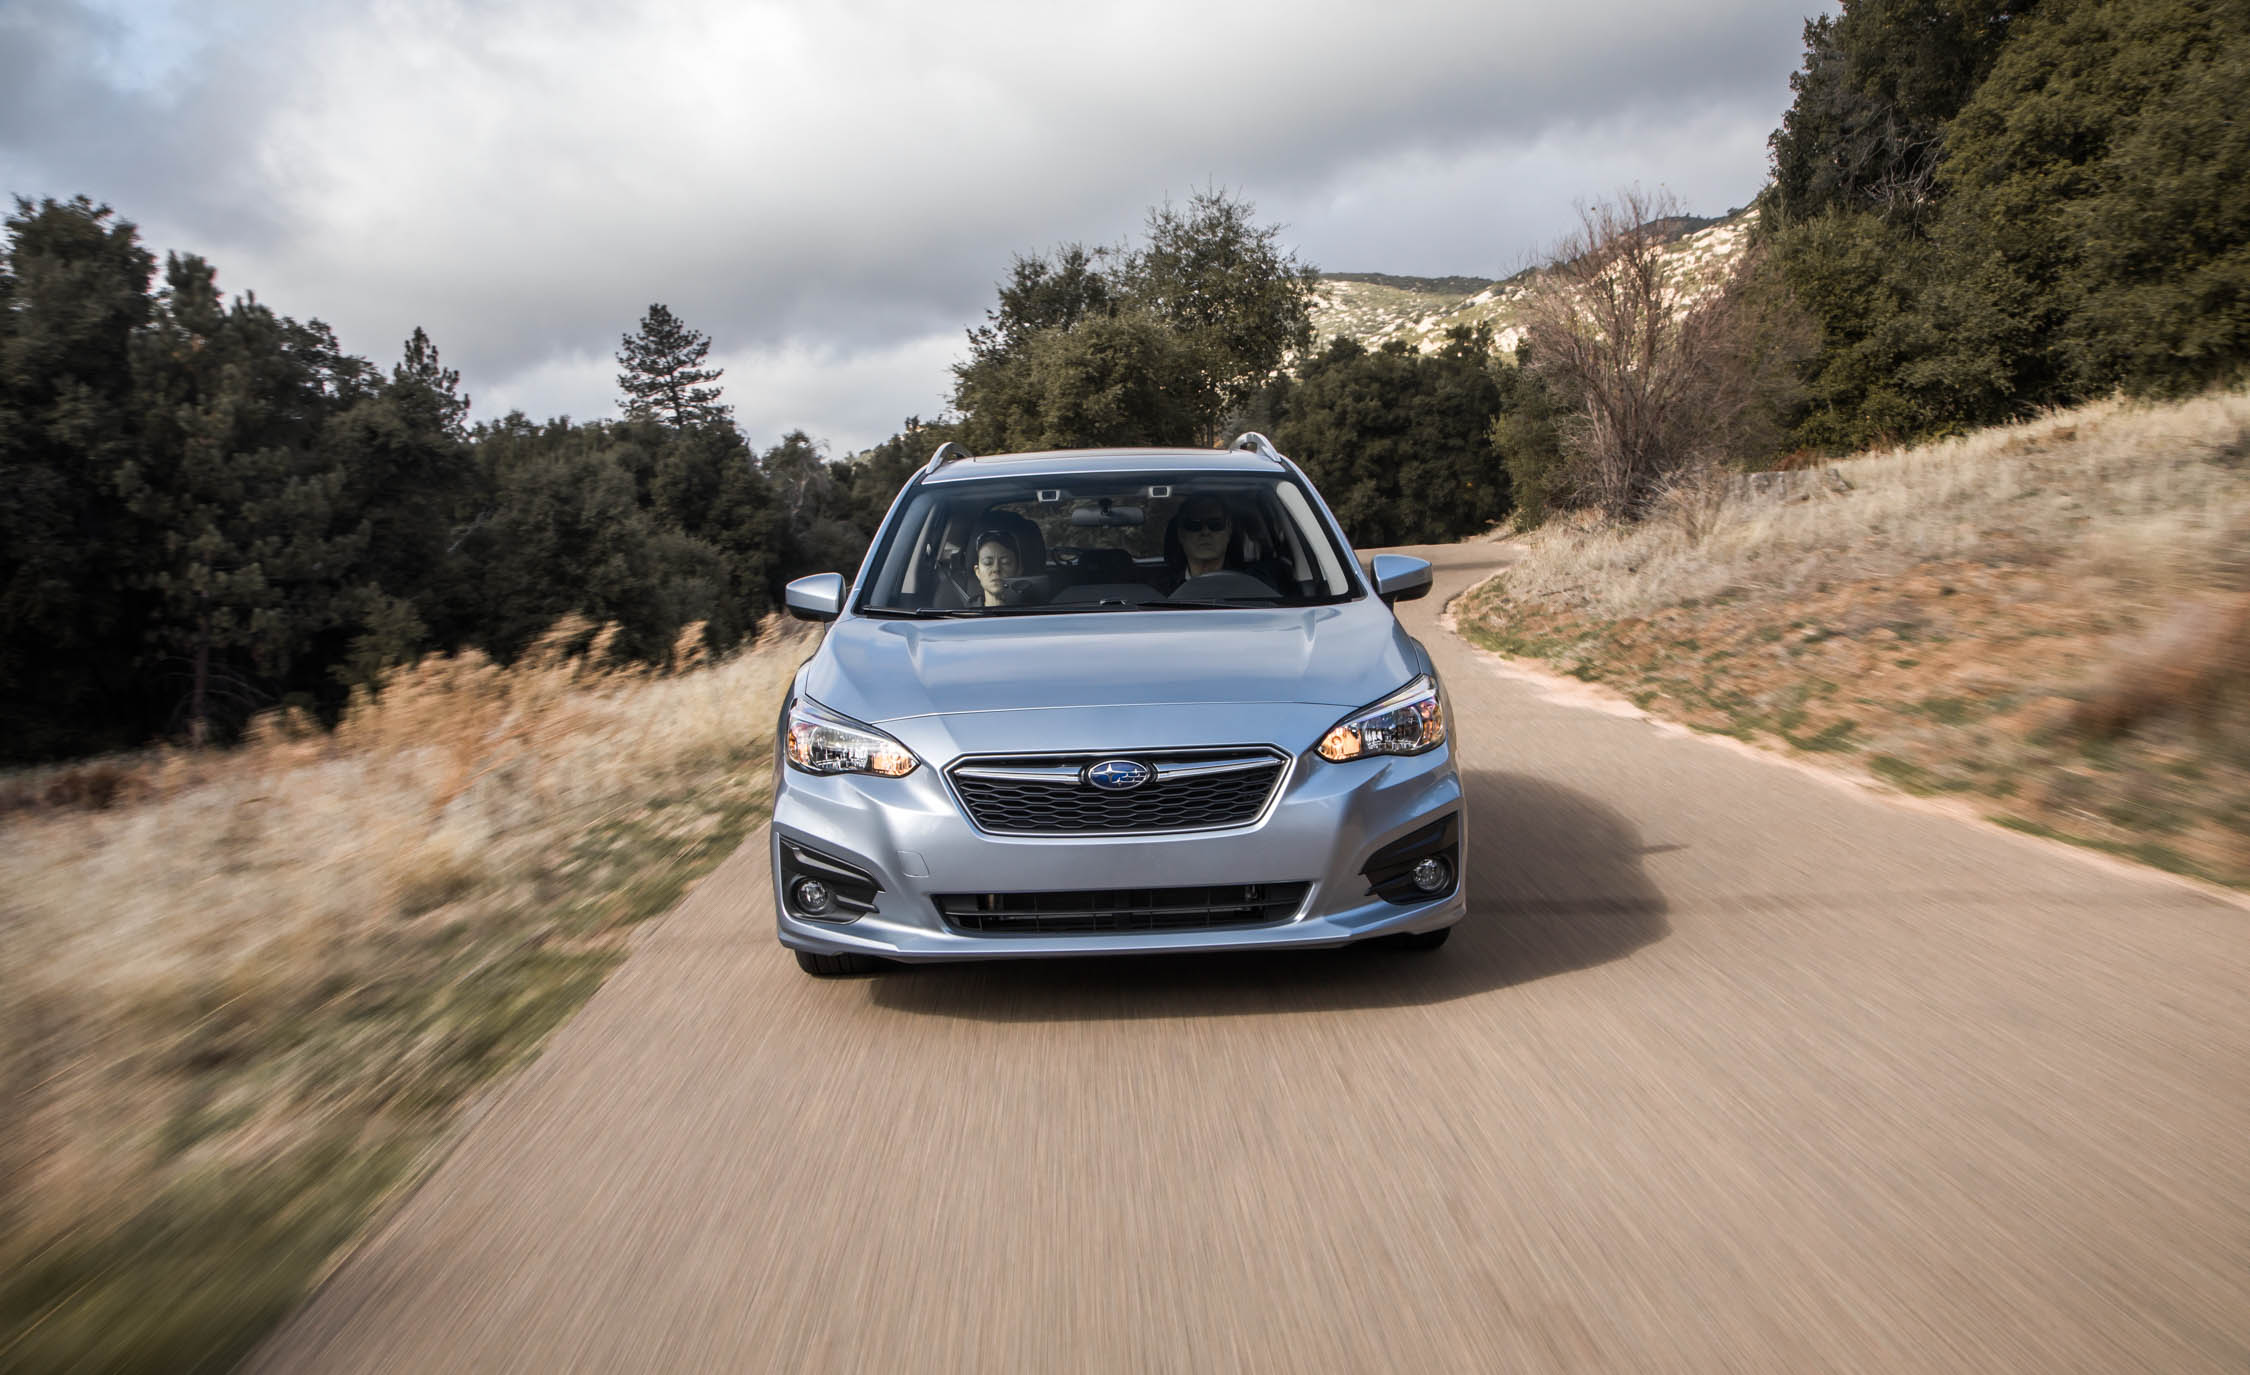 2017 Subaru Impreza Hatchback (Photo 14 of 33)